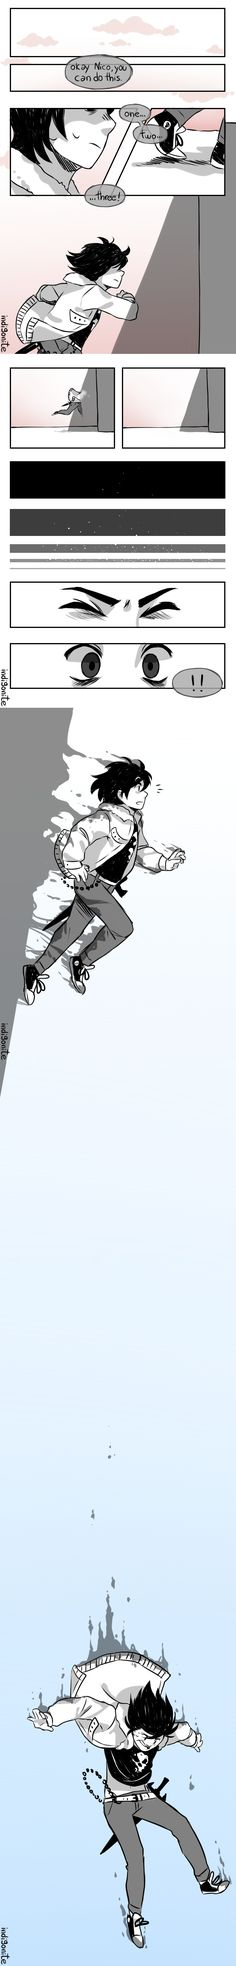 I wonder how many times Nico ended up on inconveniently high places when he was still learning how to shadow travel... Don't blame the boy, it's hard to concentrate